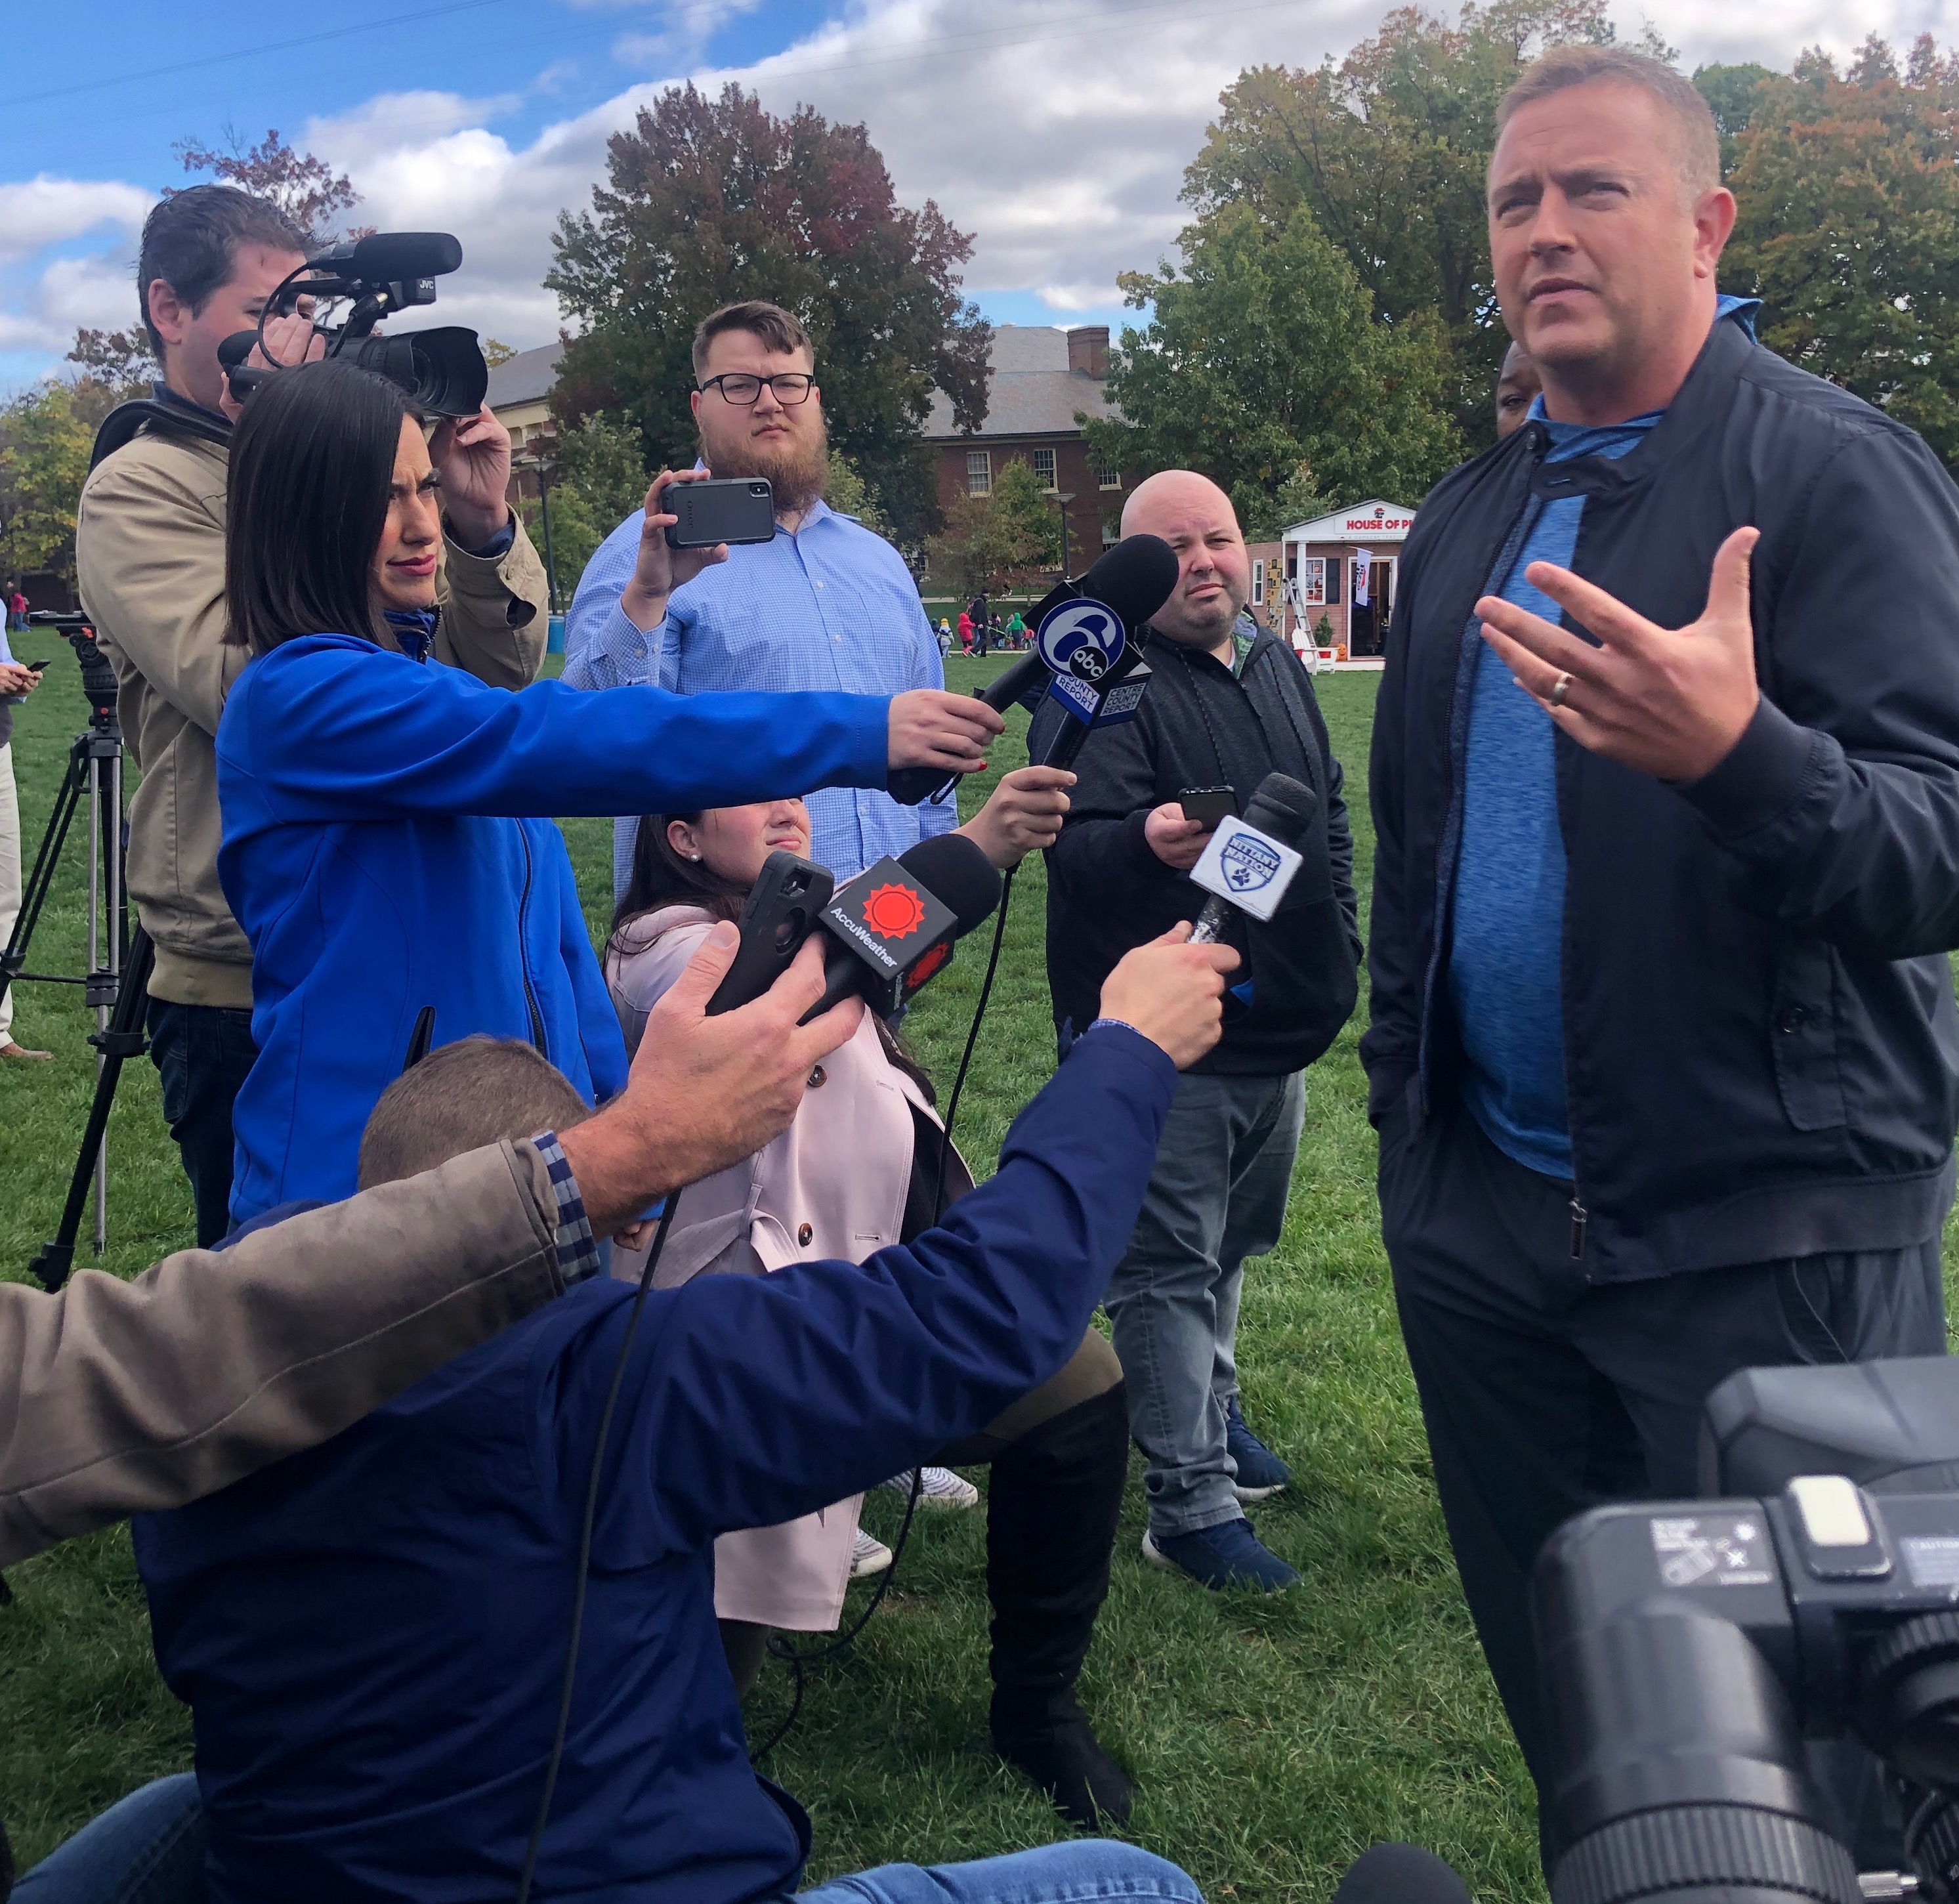 Penn State's offense will need to show more down the stretch: ESPN College GameDay analysts